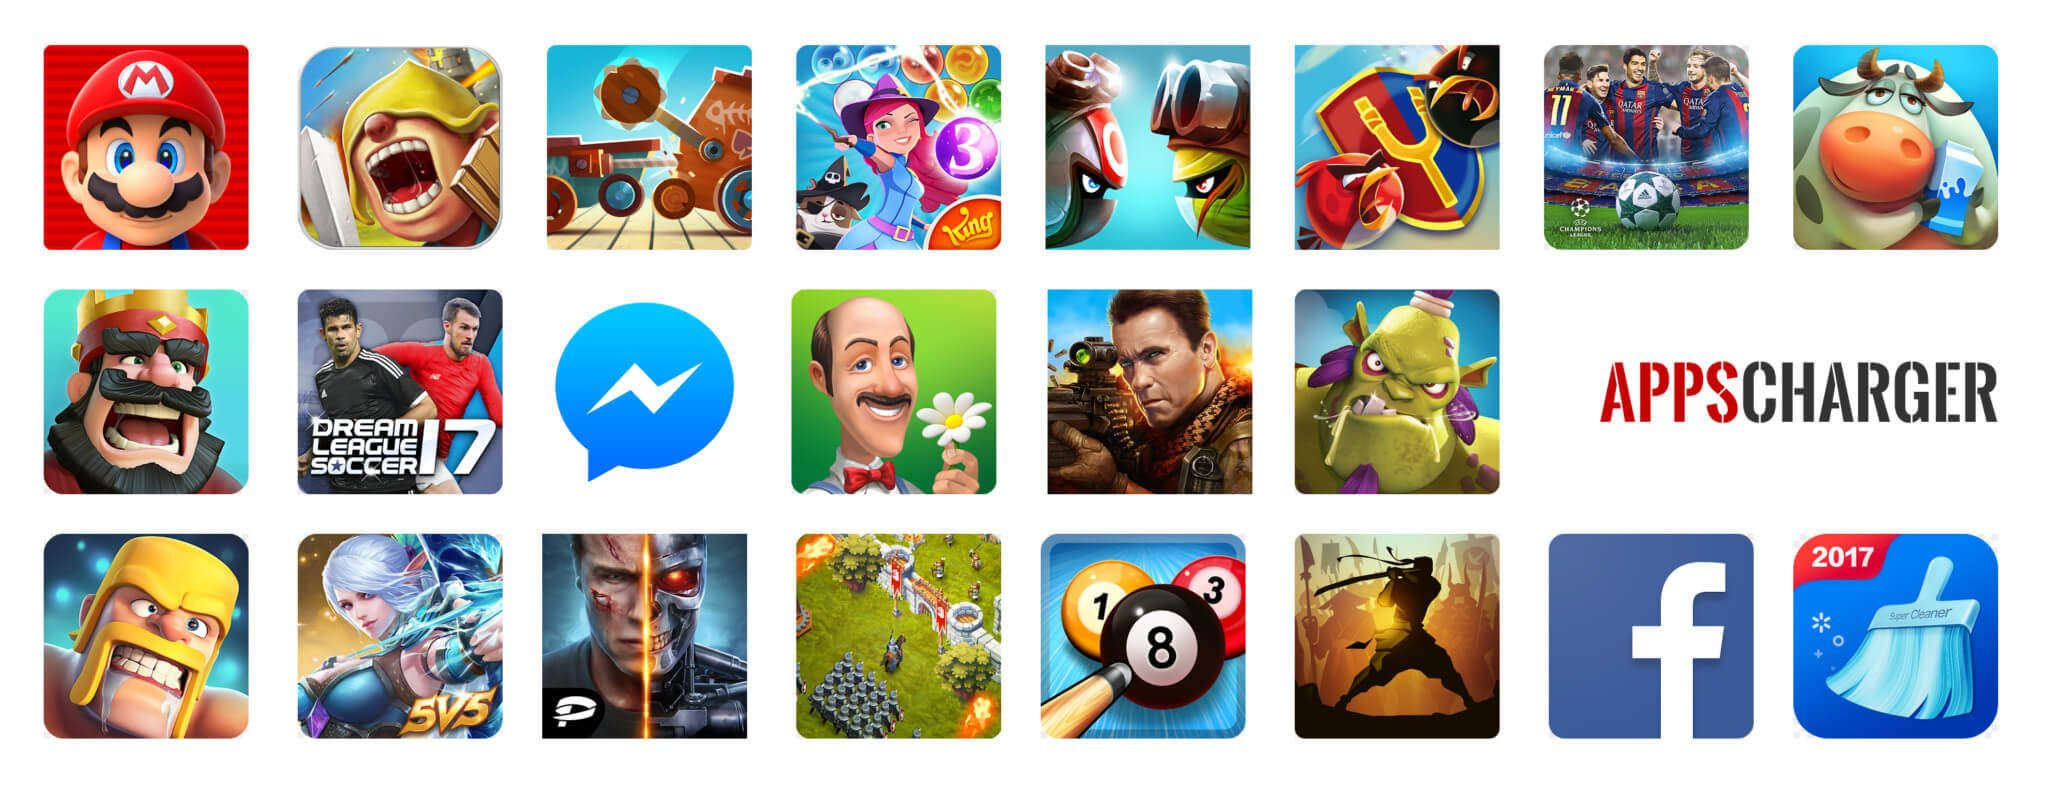 Pin by Apps Charger on Download Mobile Games for PC